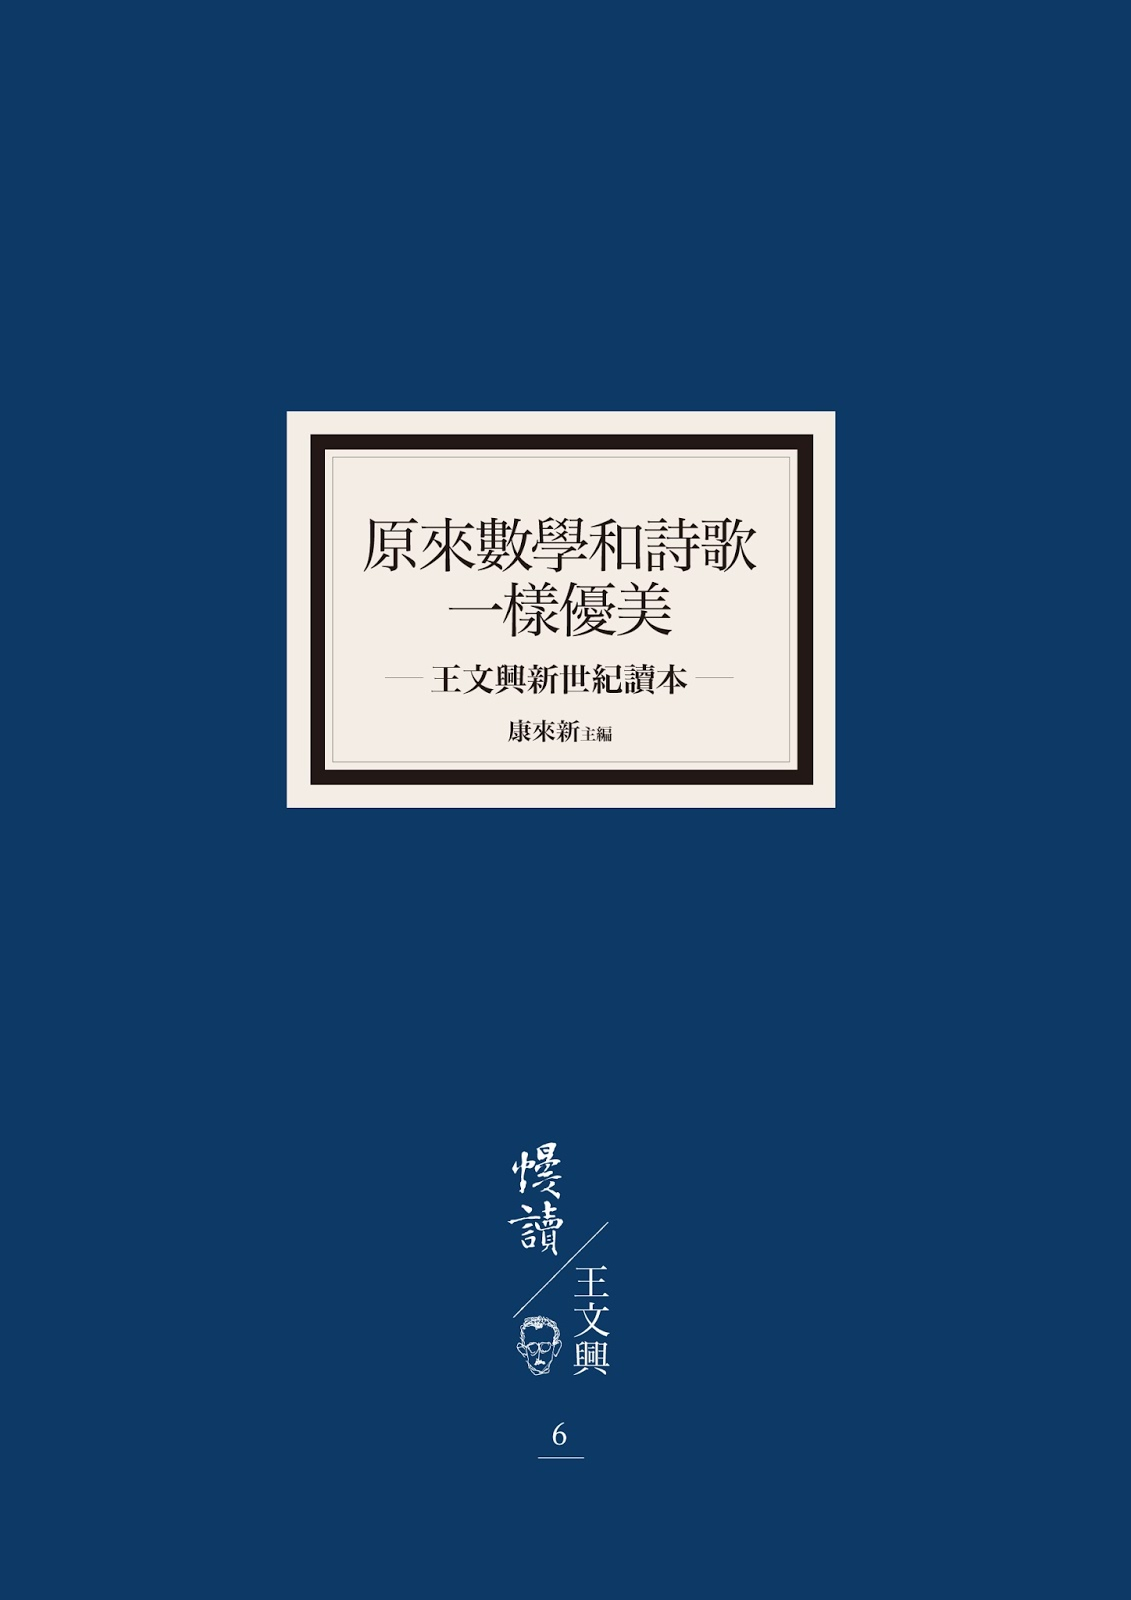 Mathematics and Poetry's Equal Elegance: A Reader of Wang Wen-hsing in the New Century 《原來數學和詩歌一樣優美――王文興新世紀讀本》(2013)